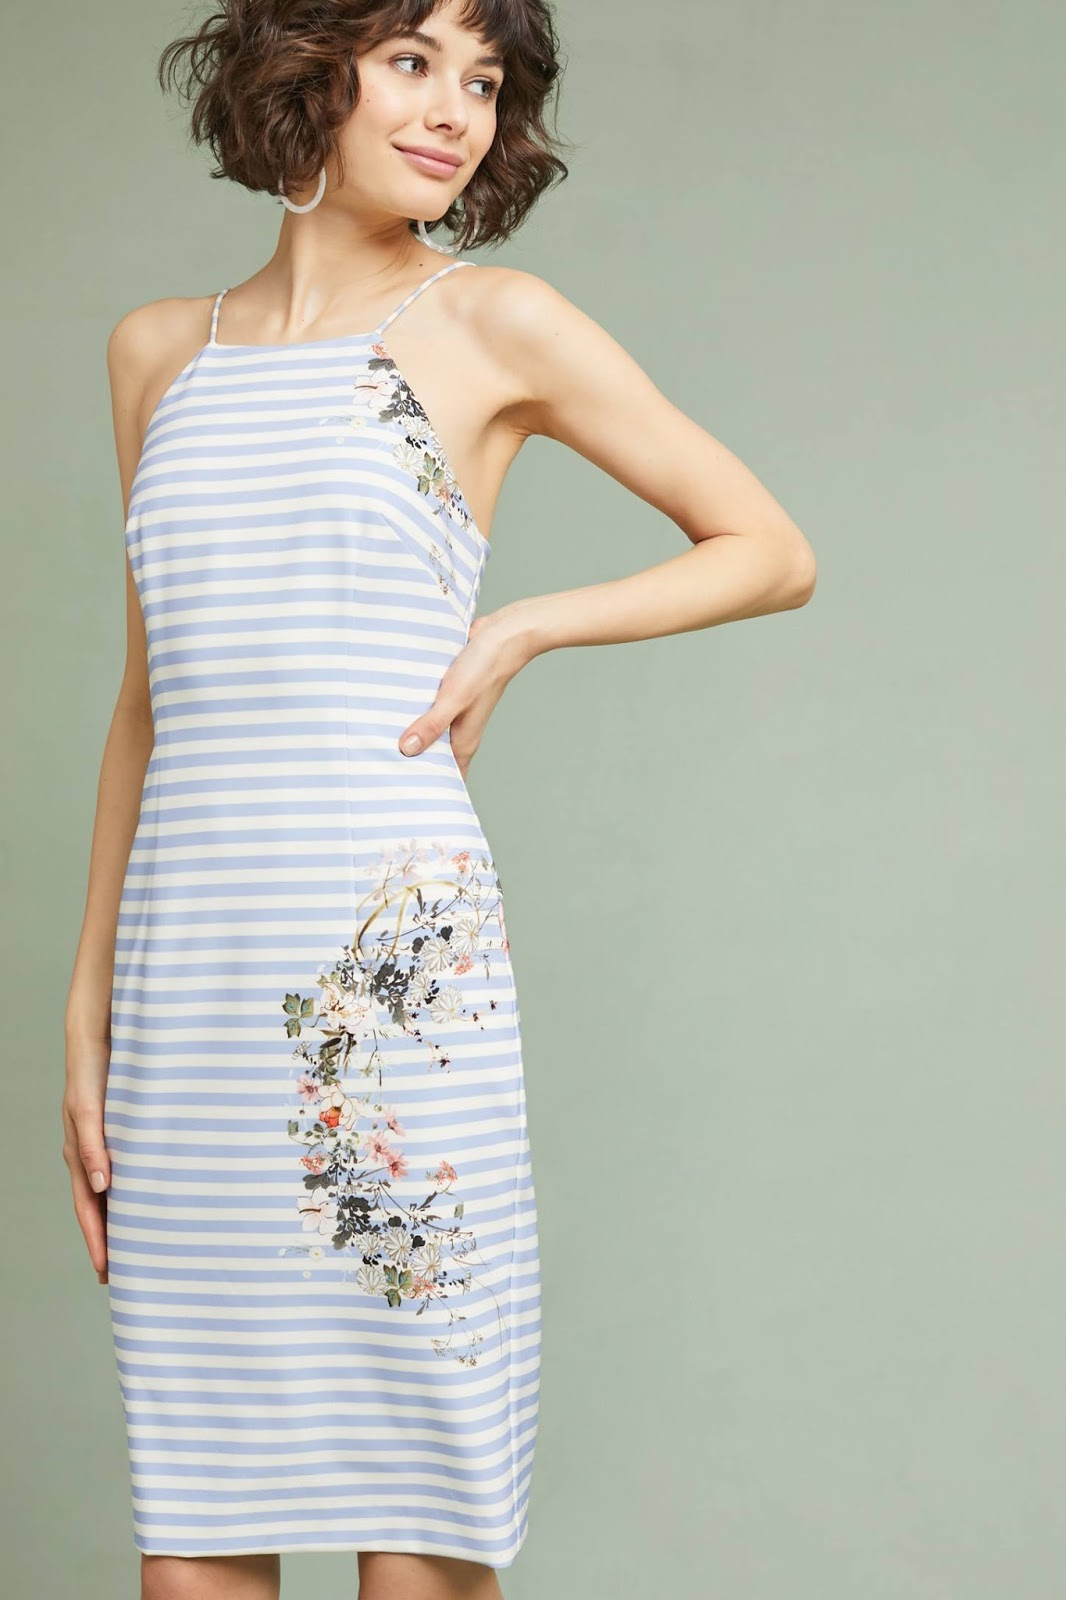 Investigating the Anthropologie April new arrivals :: Effortlessly with Roxy